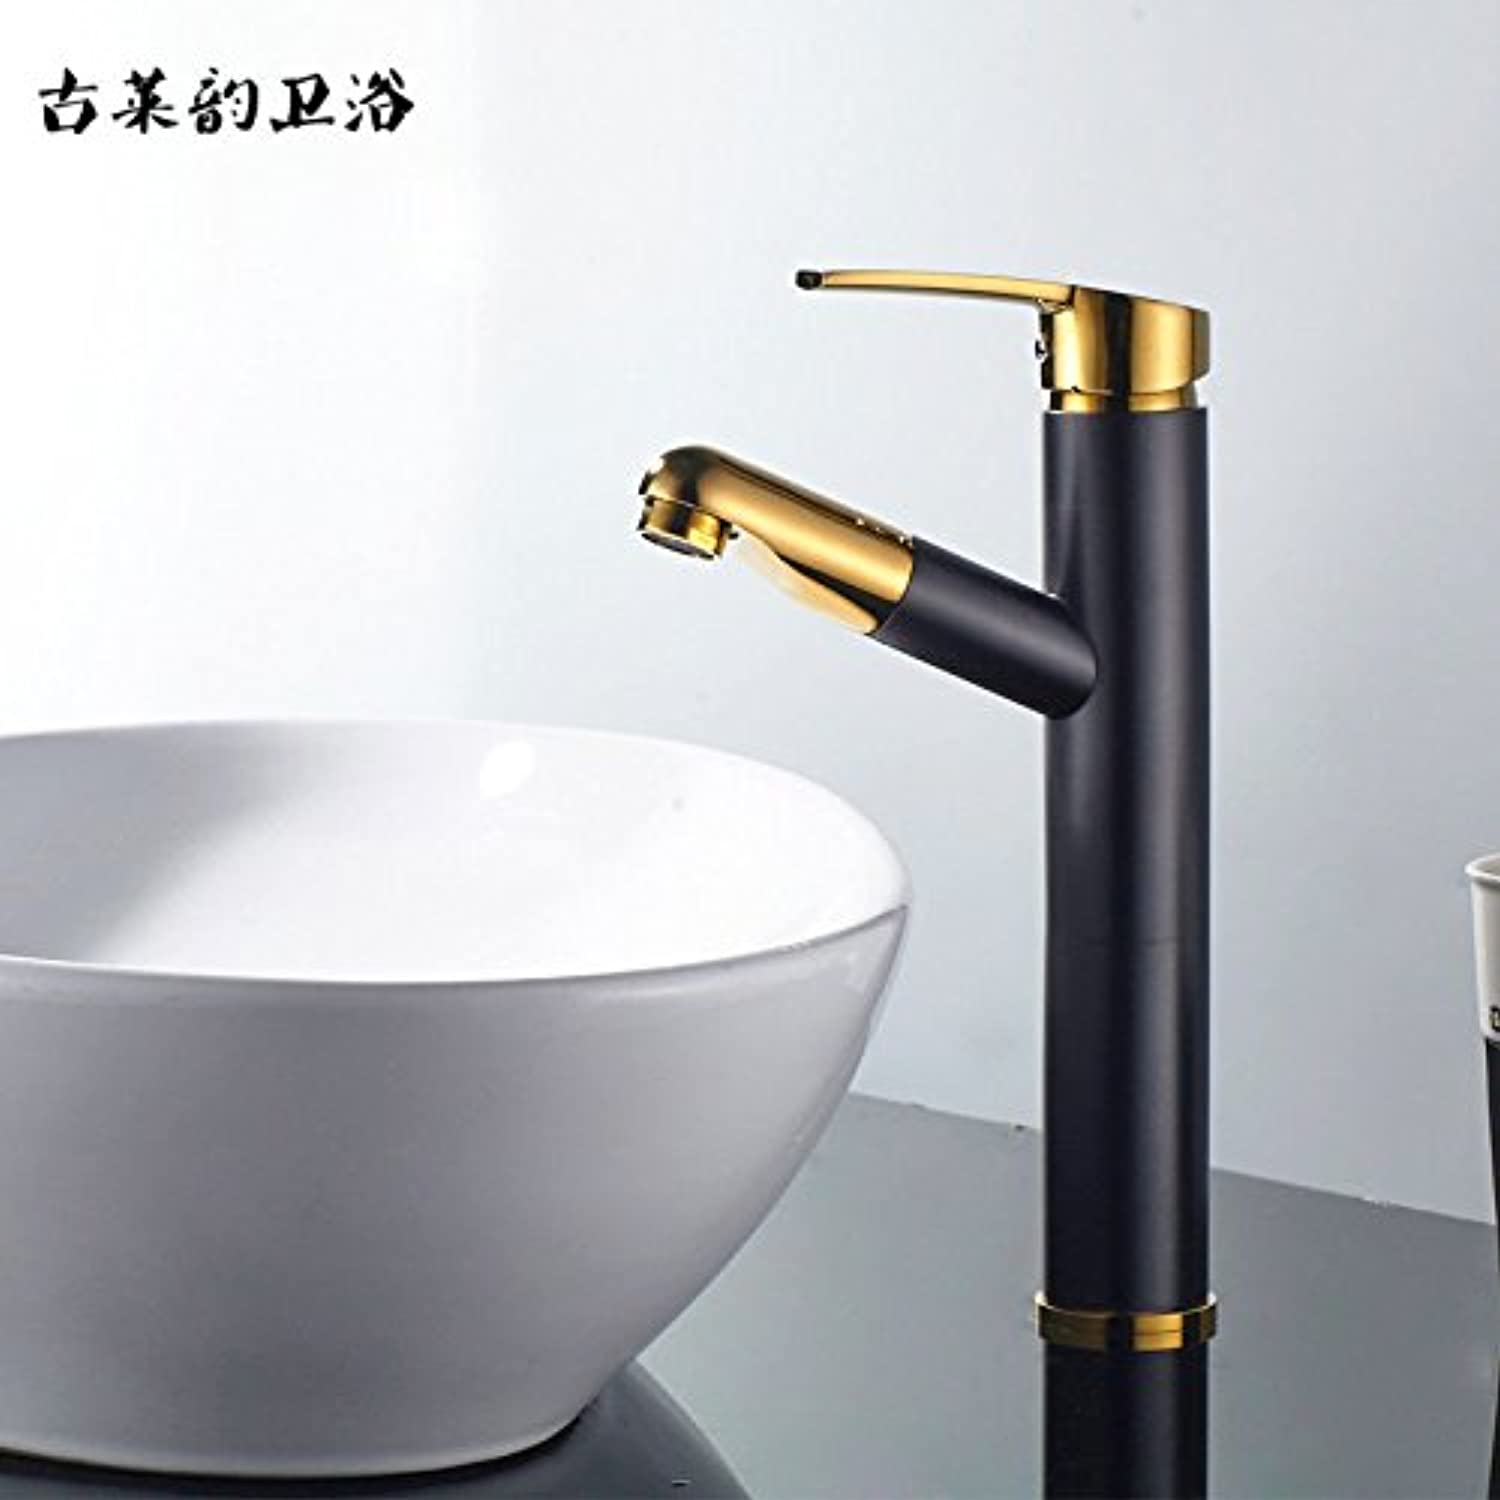 Lalaky Taps Faucet Kitchen Mixer Sink Waterfall Bathroom Mixer Basin Mixer Tap for Kitchen Bathroom and Washroom Pull-Type Telescopic Hot and Cold Copper Can Stretch Black Retro gold